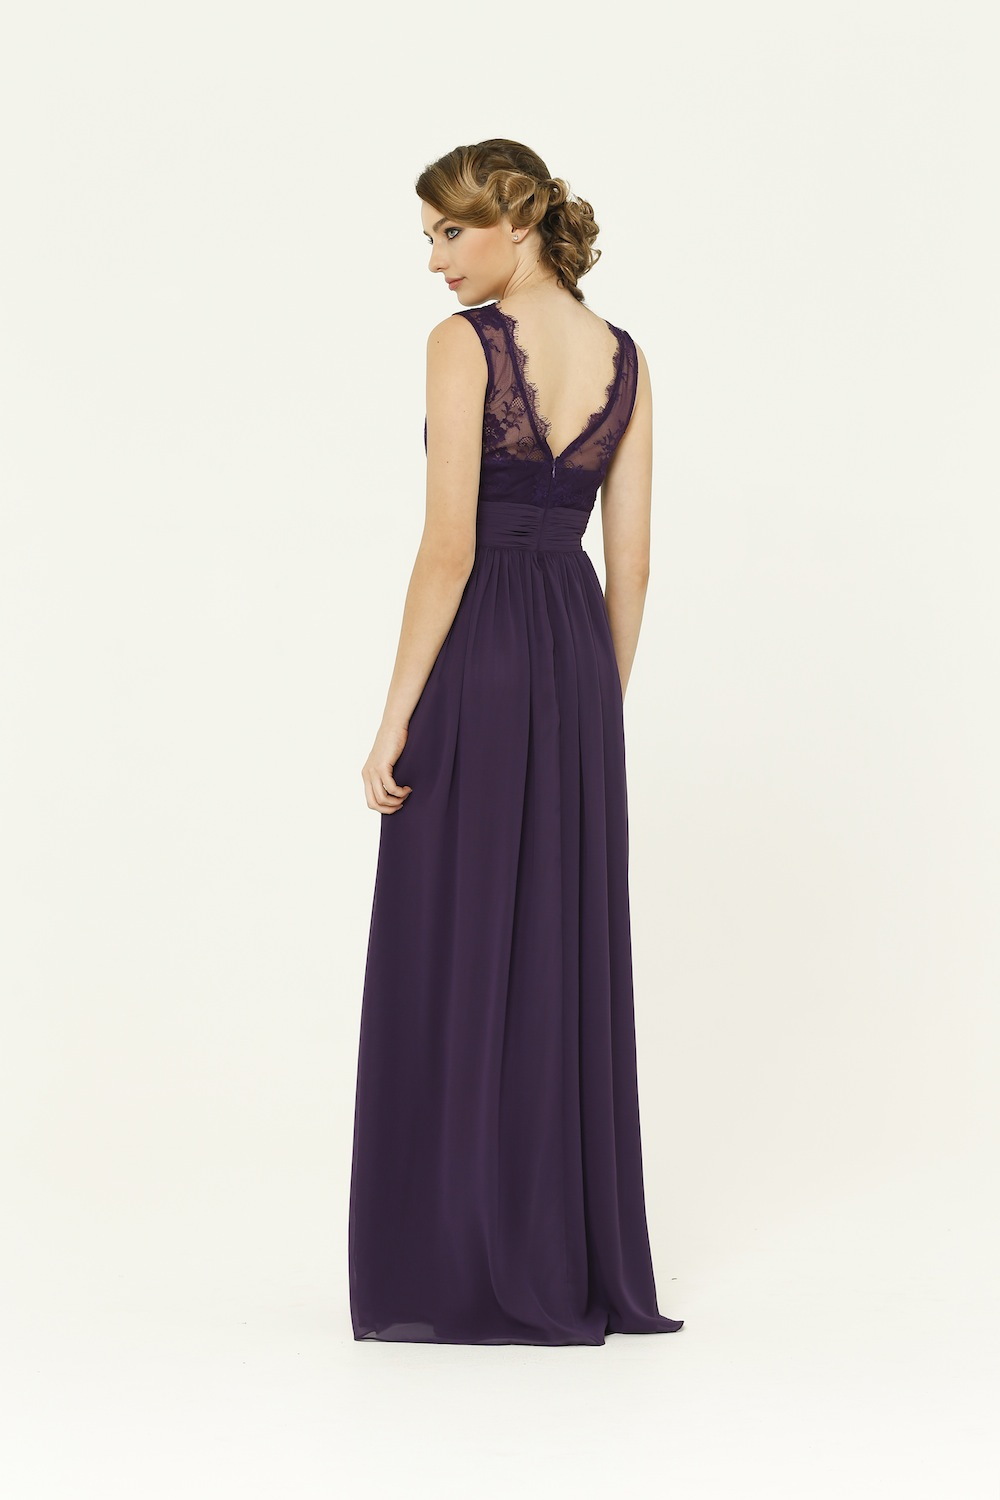 Charlotte Aubergine Bridesmaid Dress